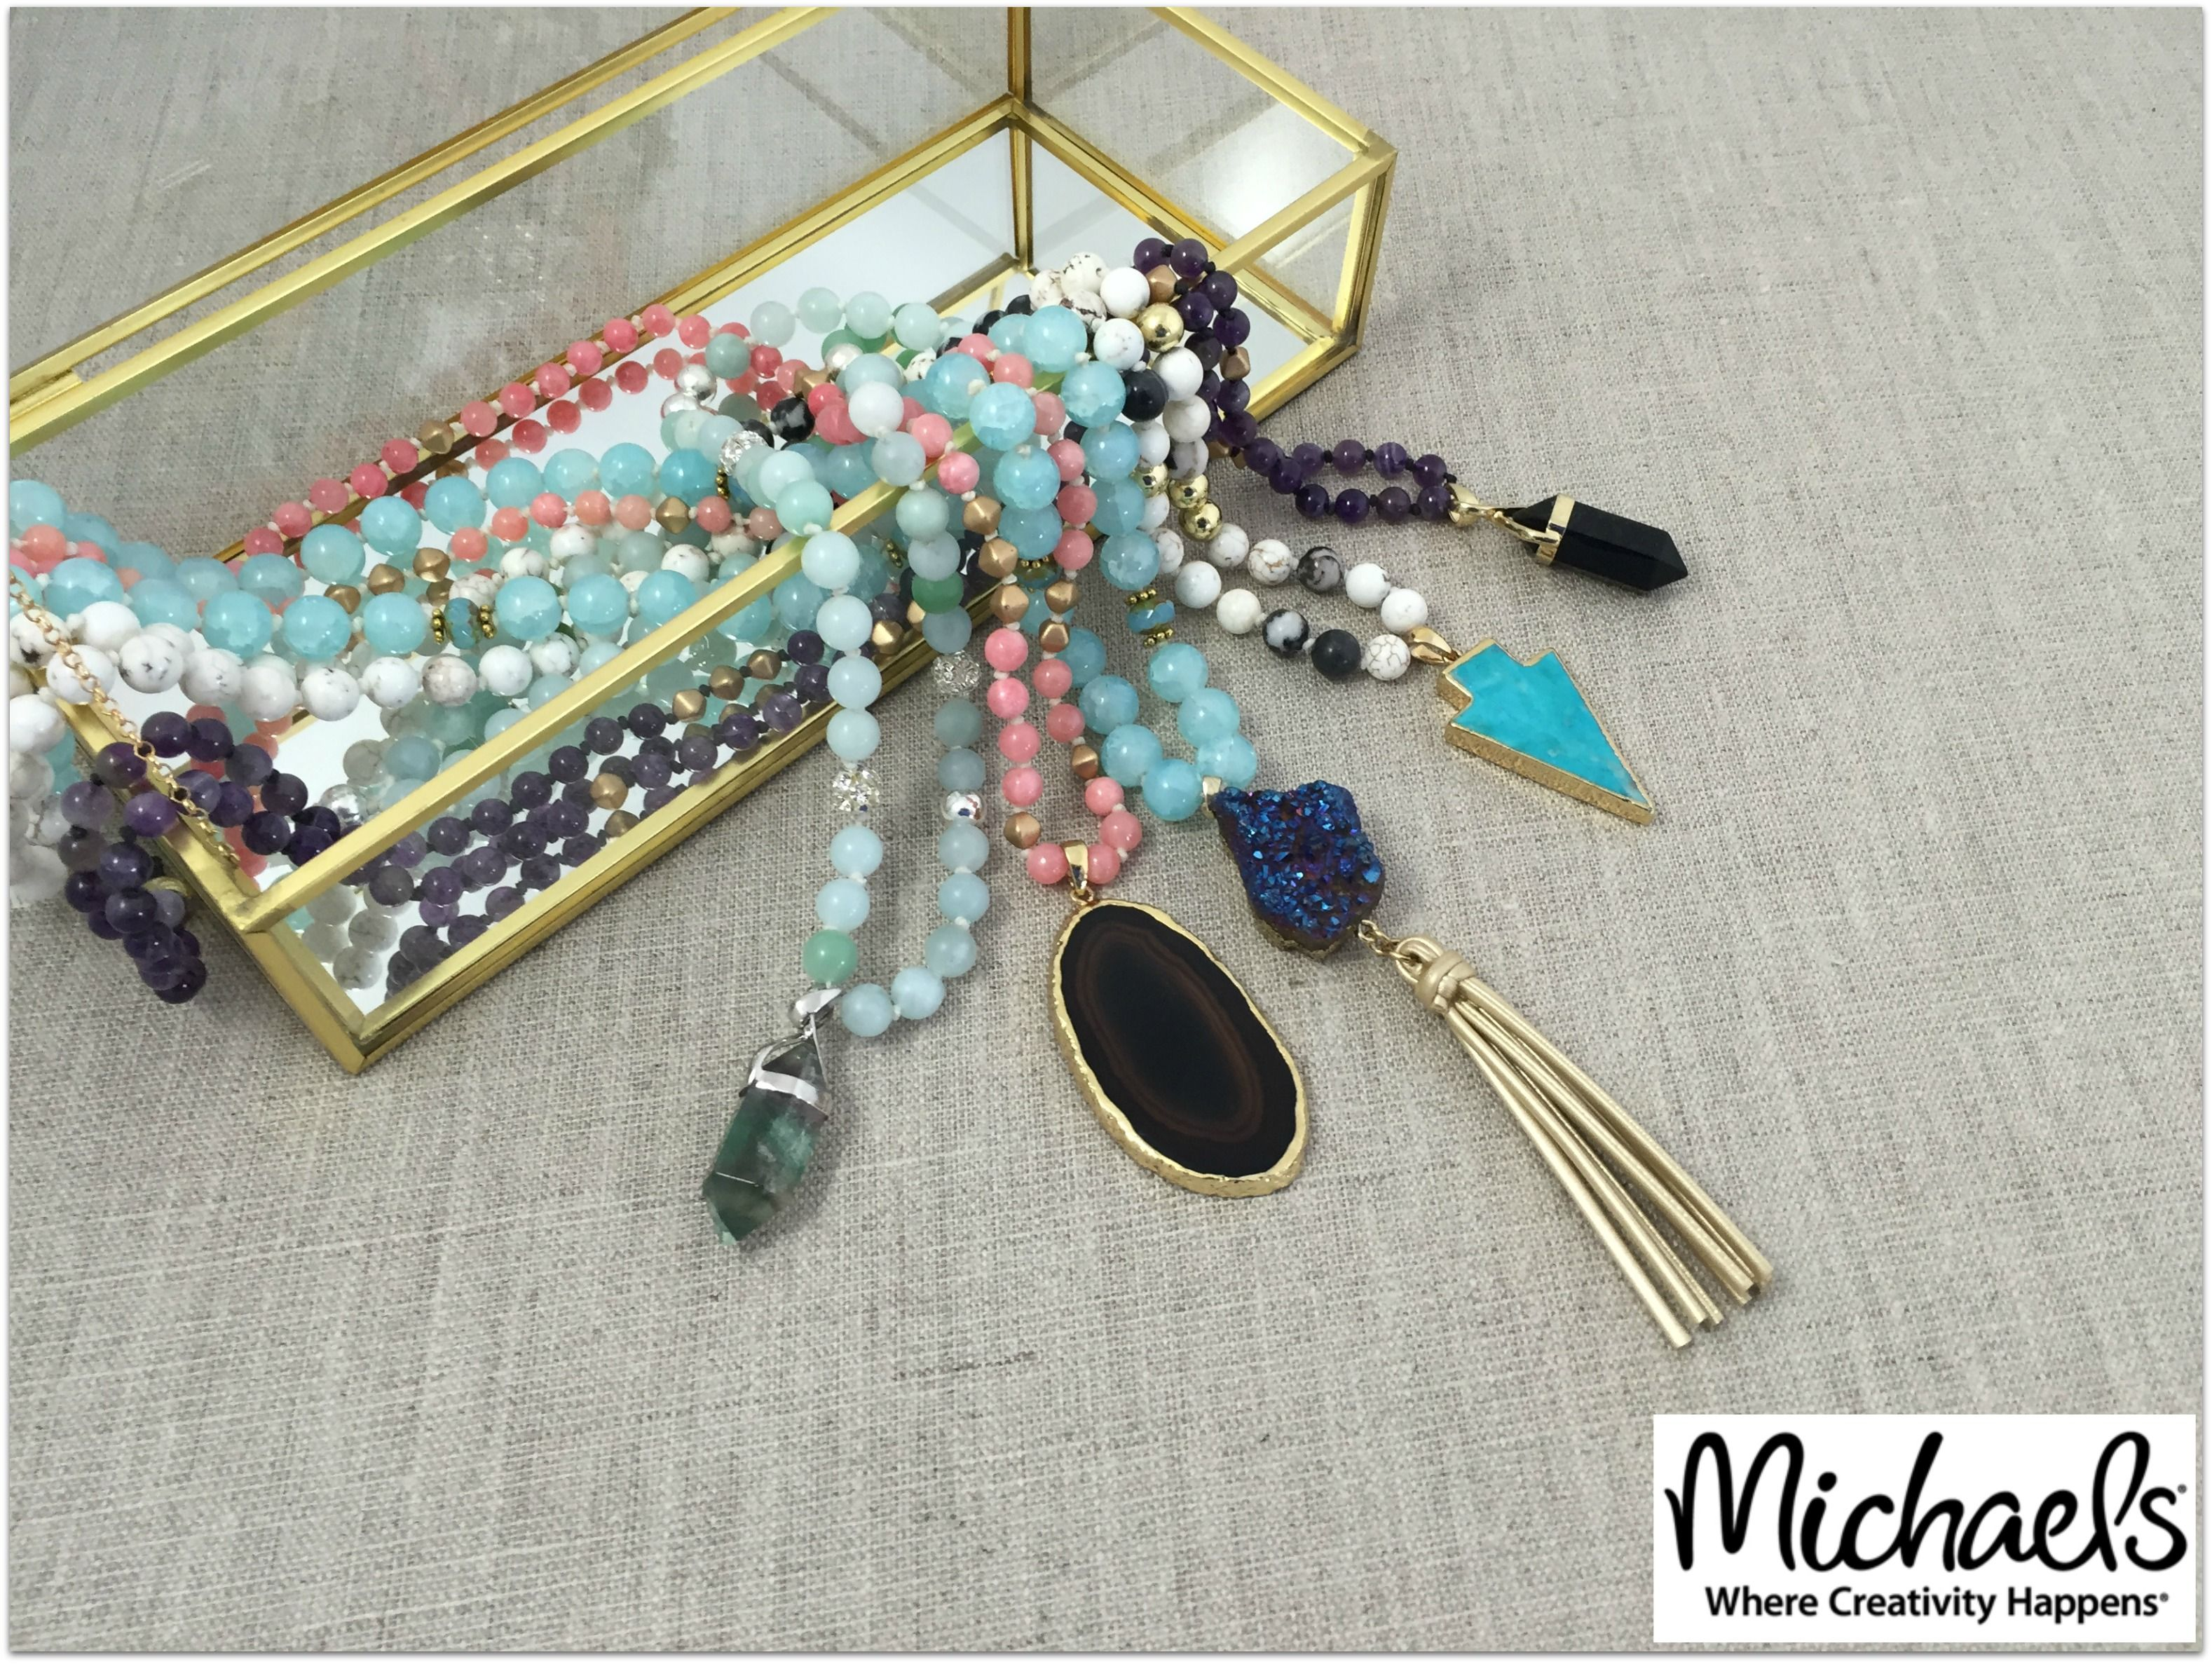 Make your own knotted necklaces with beadgallery and sedona make your own knotted necklaces with beadgallery and sedona pendants from michaels aloadofball Image collections